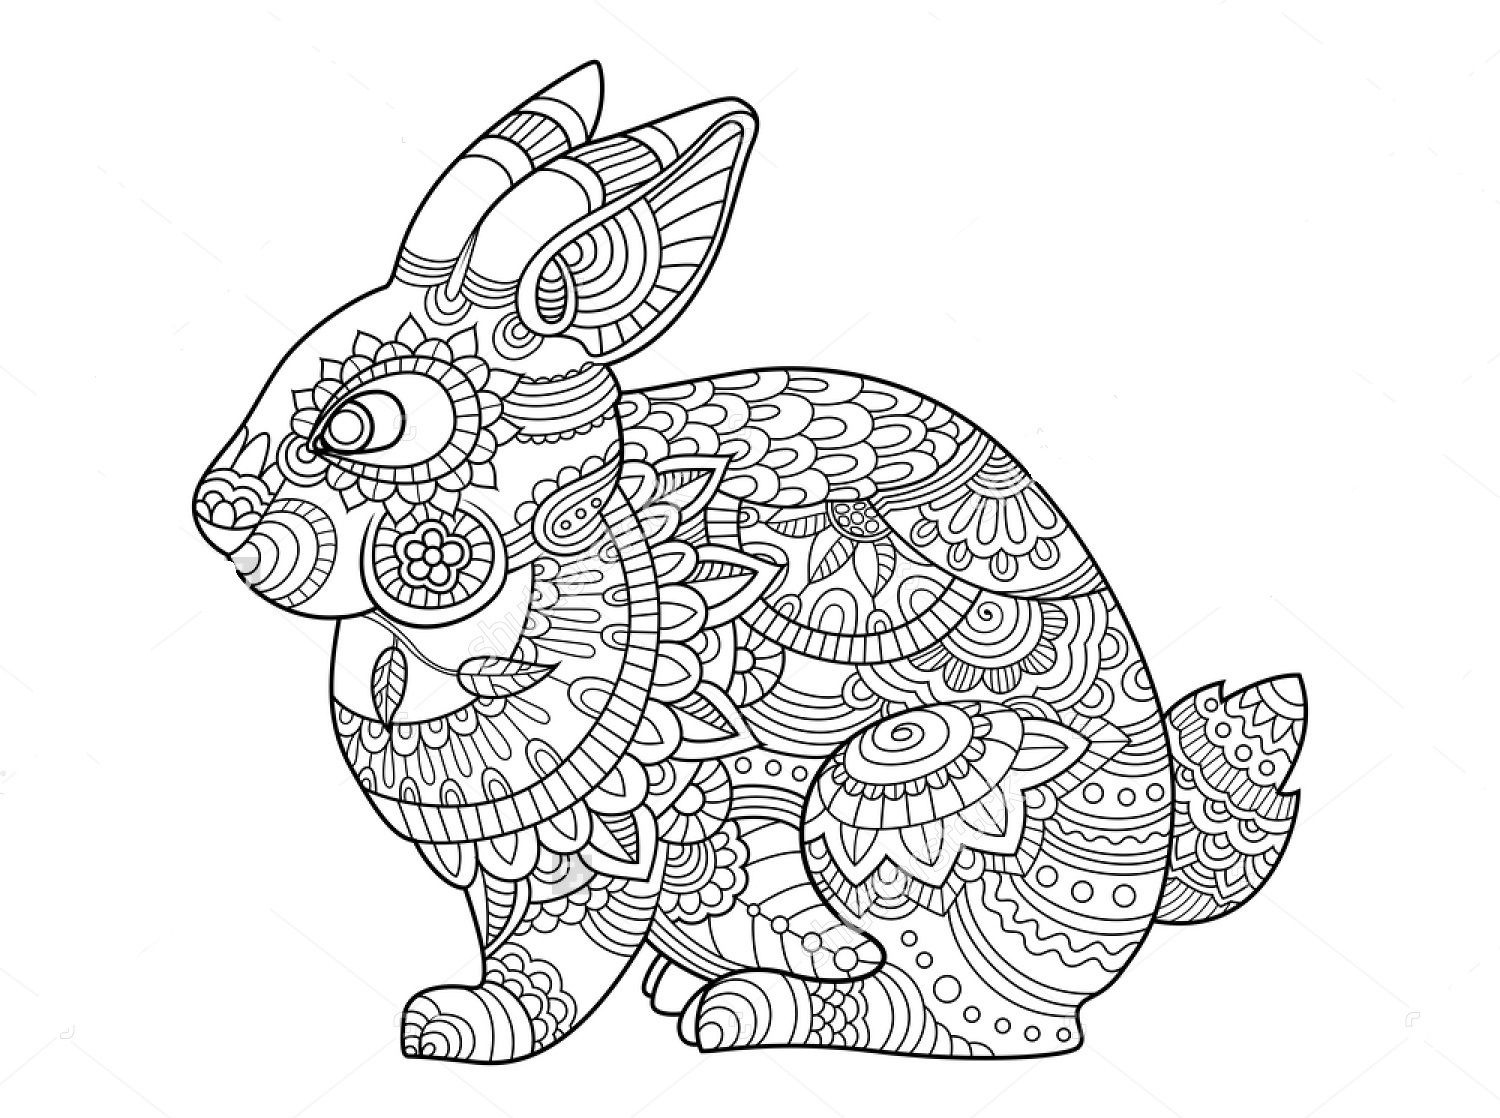 1500x1118 Awesome Rabbit Zentangle Coloring Page Art Free